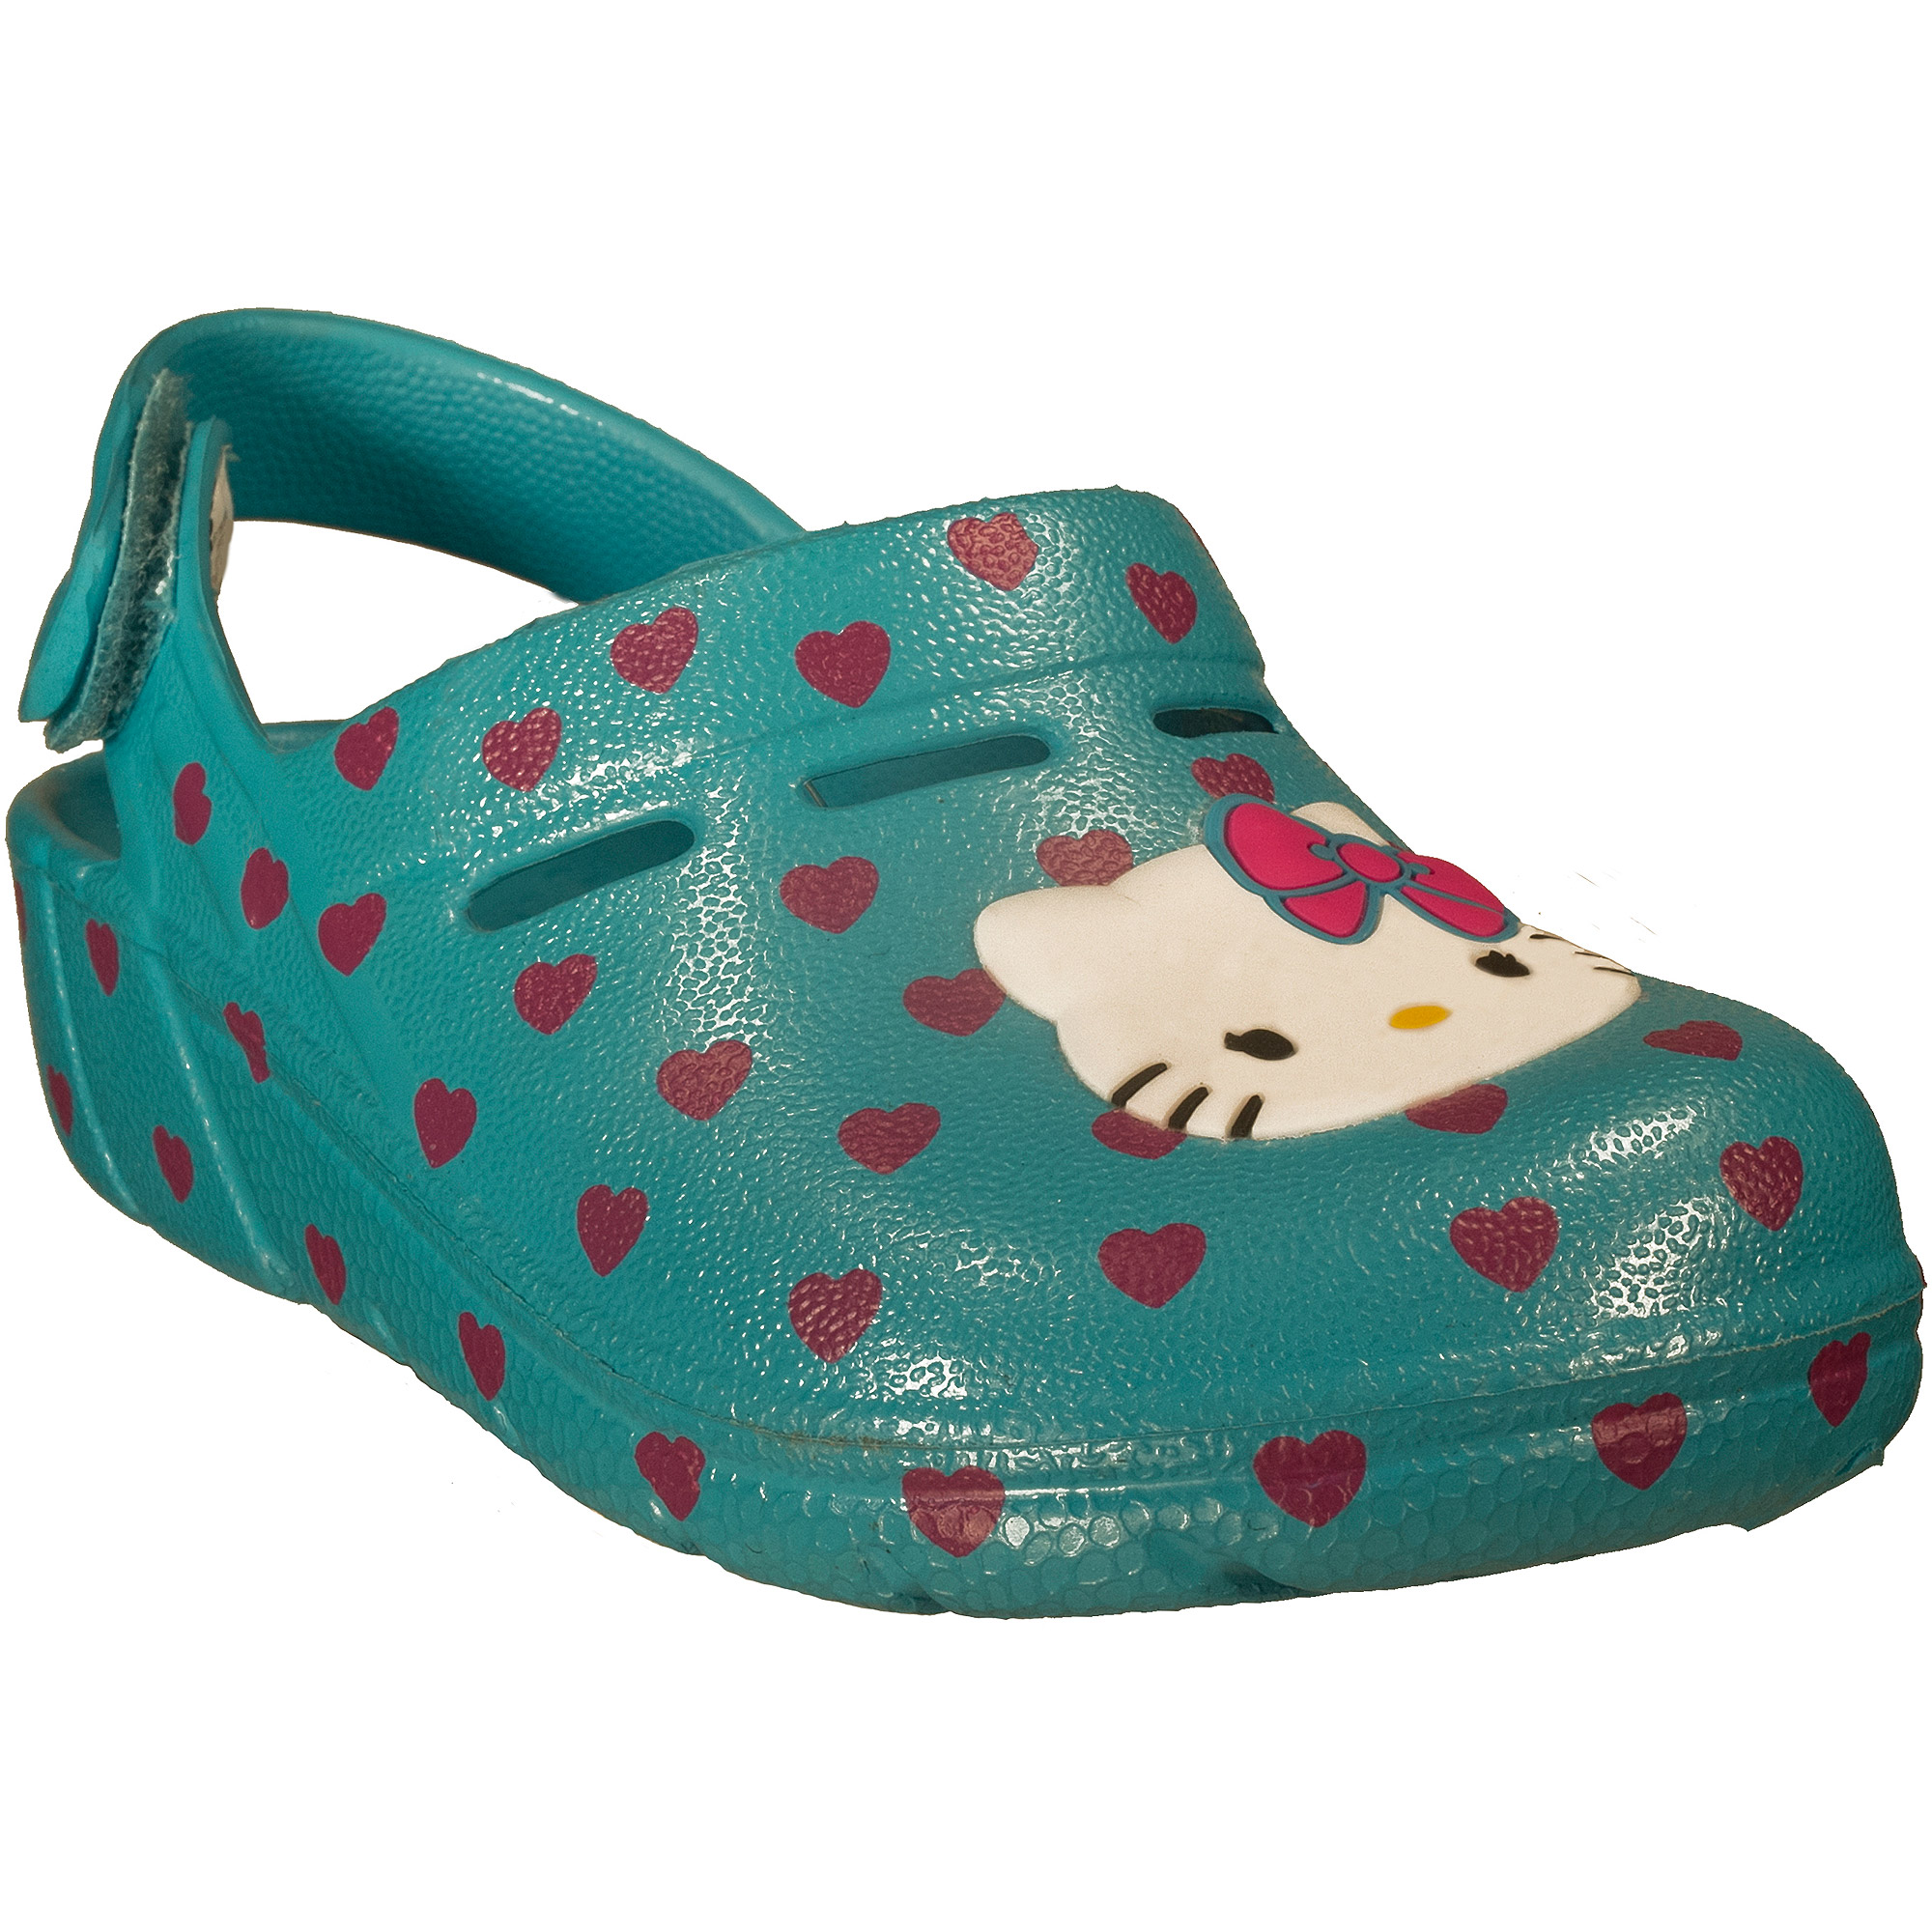 Hello Kitty Toddler Girls' Rubber Clog Shoe